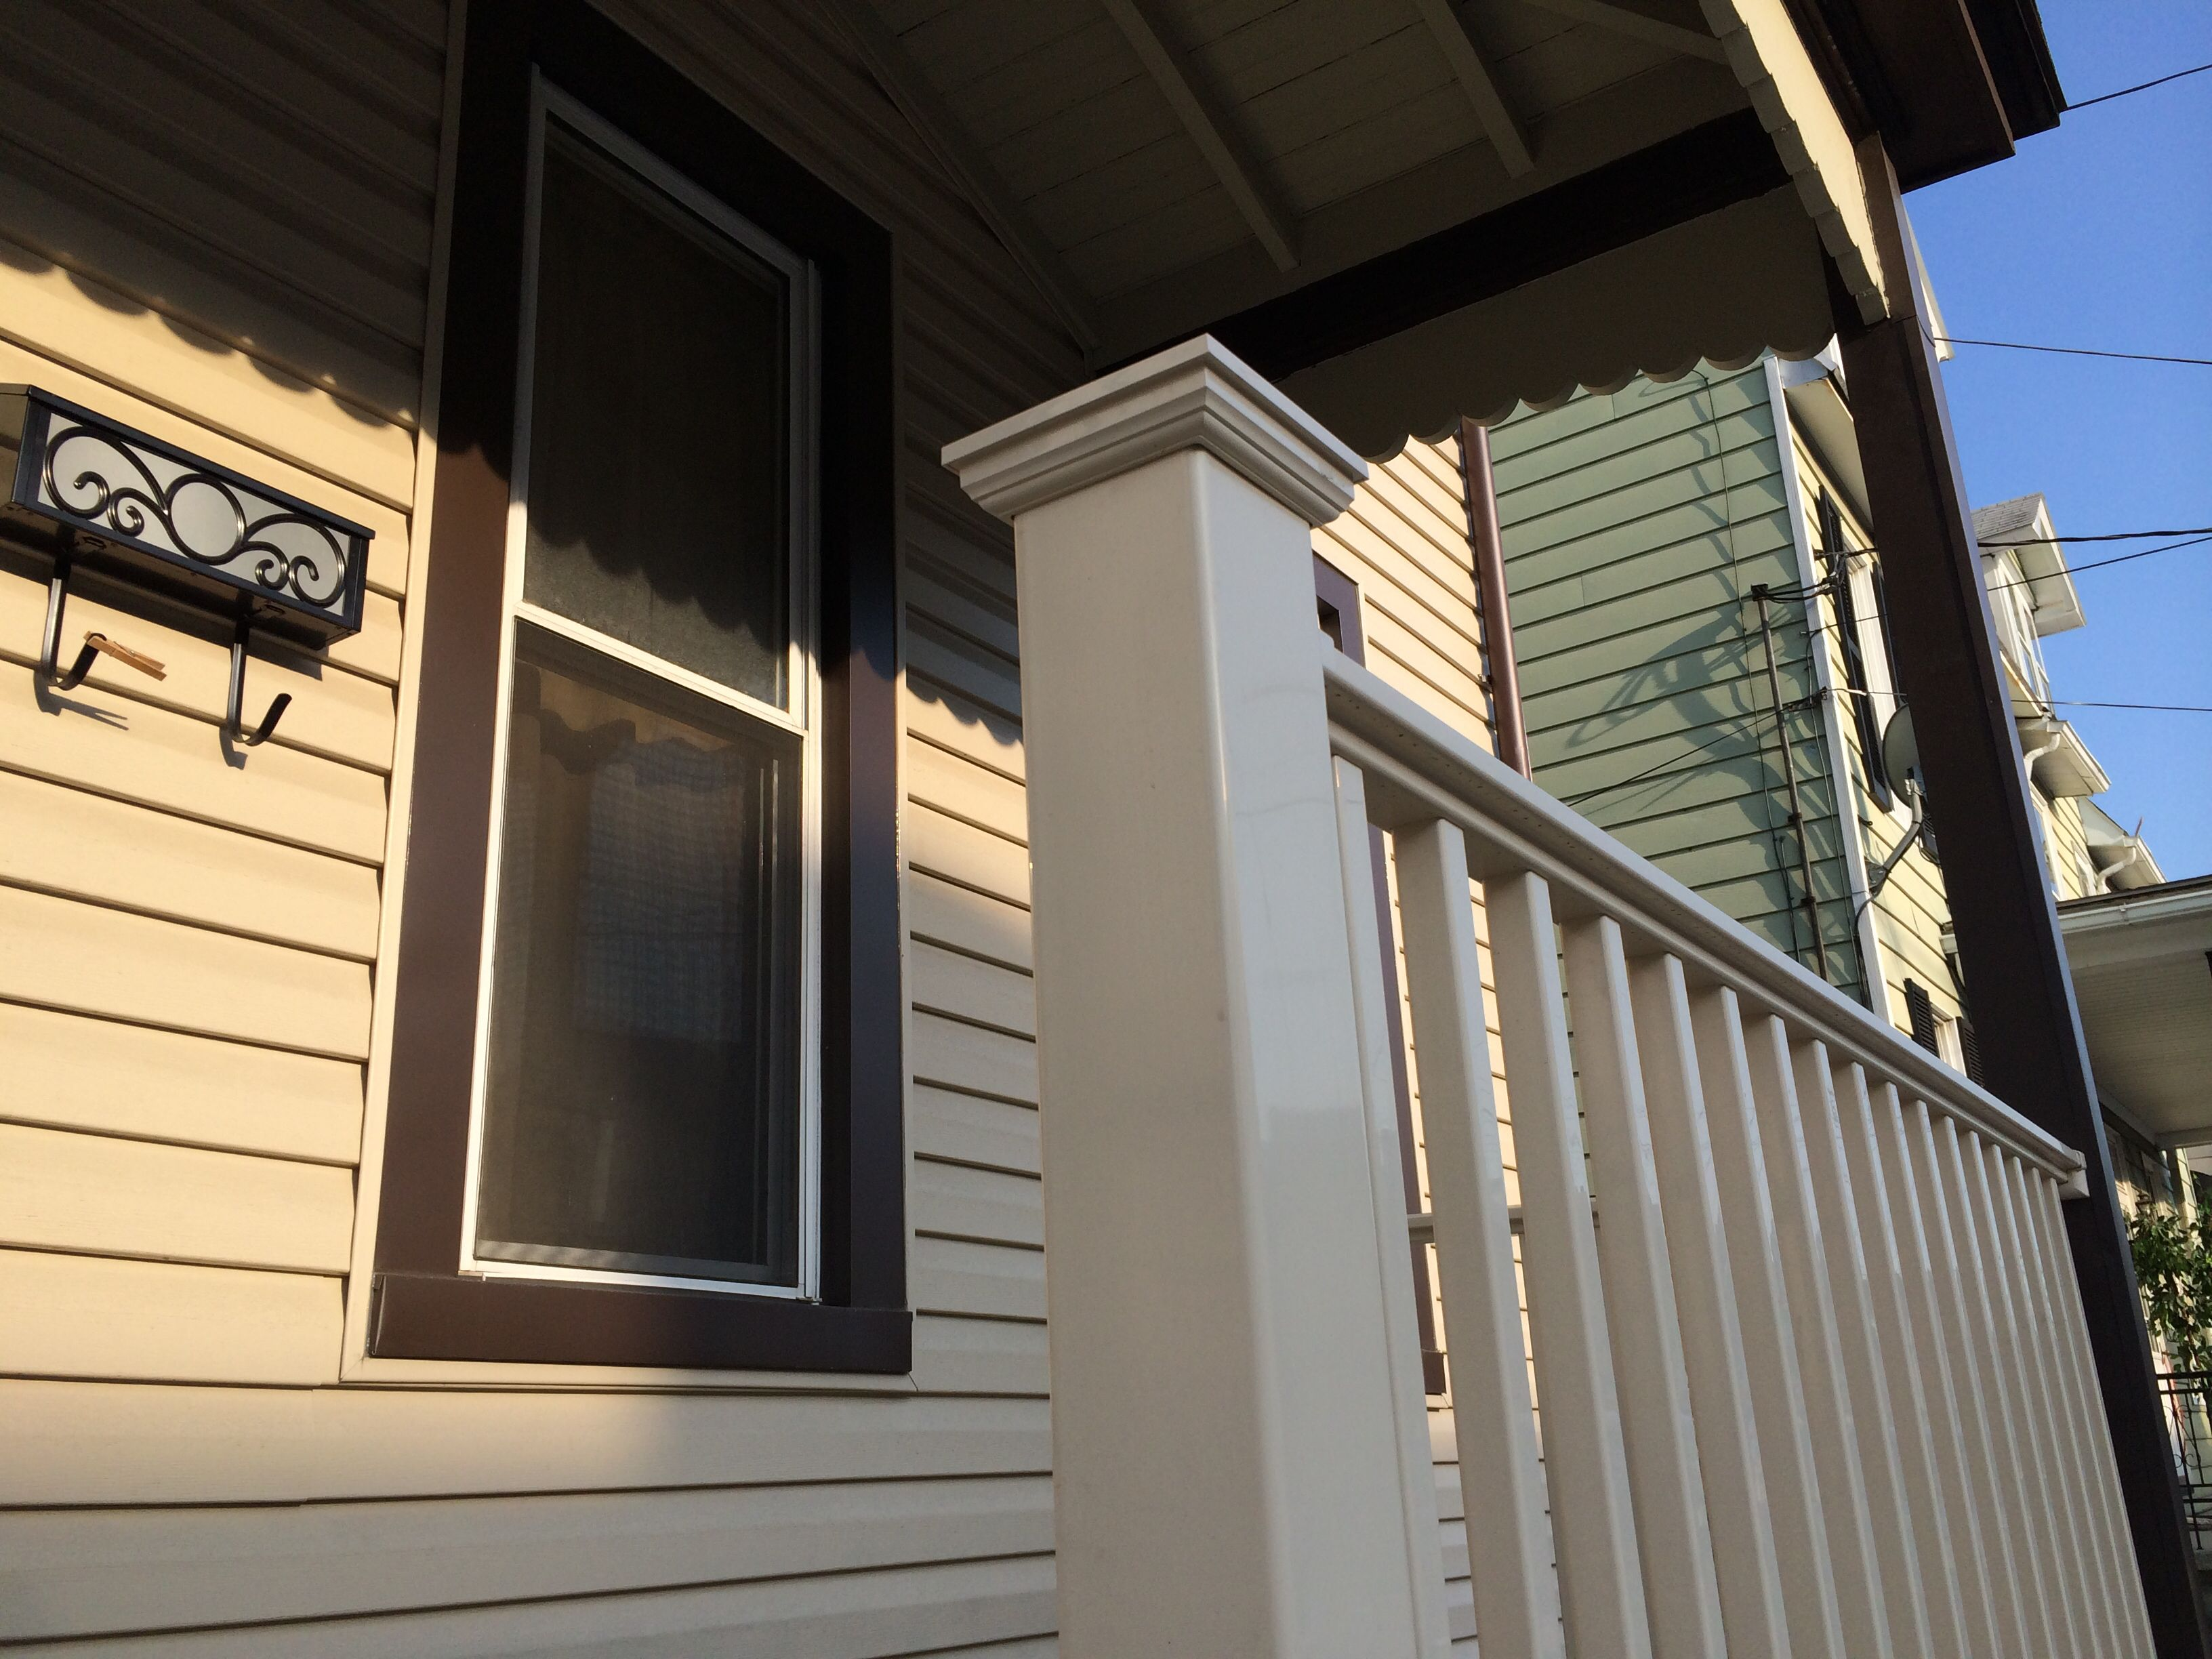 Everything From The Vinyl Railings To The Mailbox Was Part Of This Vinyl Siding Makeover Vinyl Siding Vinyl Railing Replacing Vinyl Siding